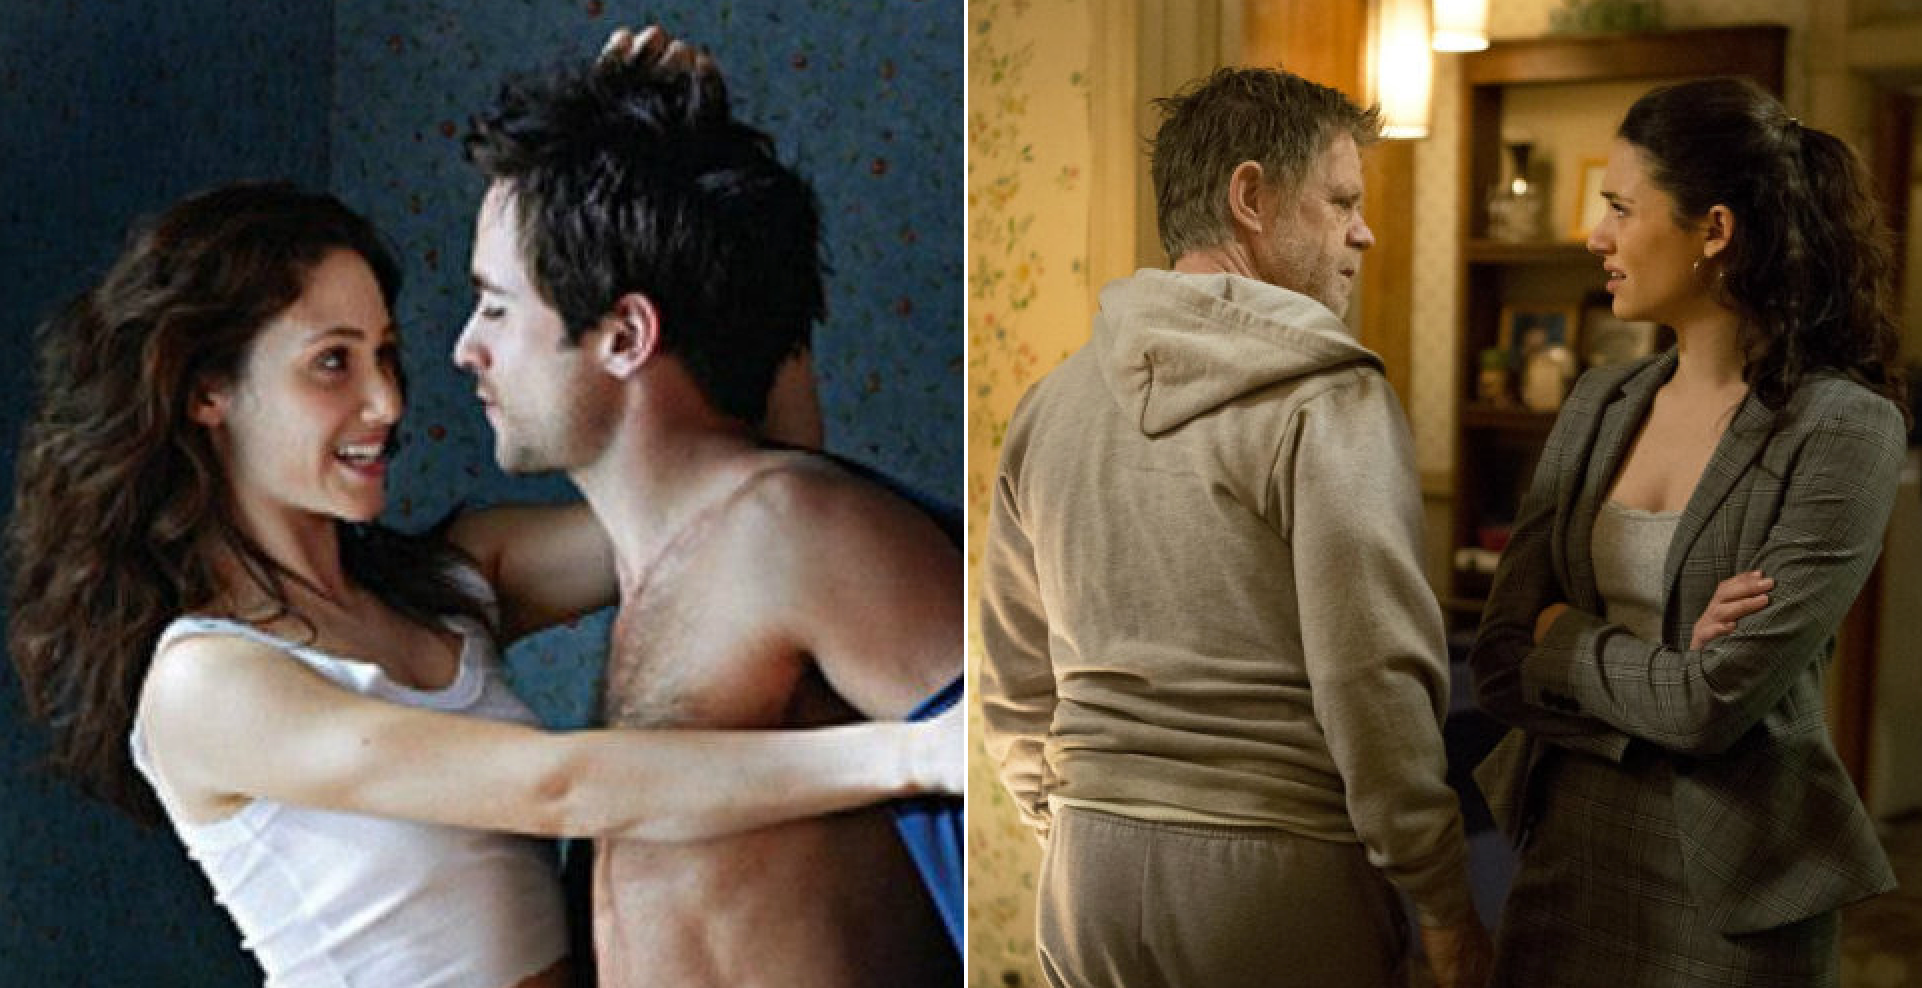 Is There Nudity In Shameless shameless confessions: scenes that were almost too shameful